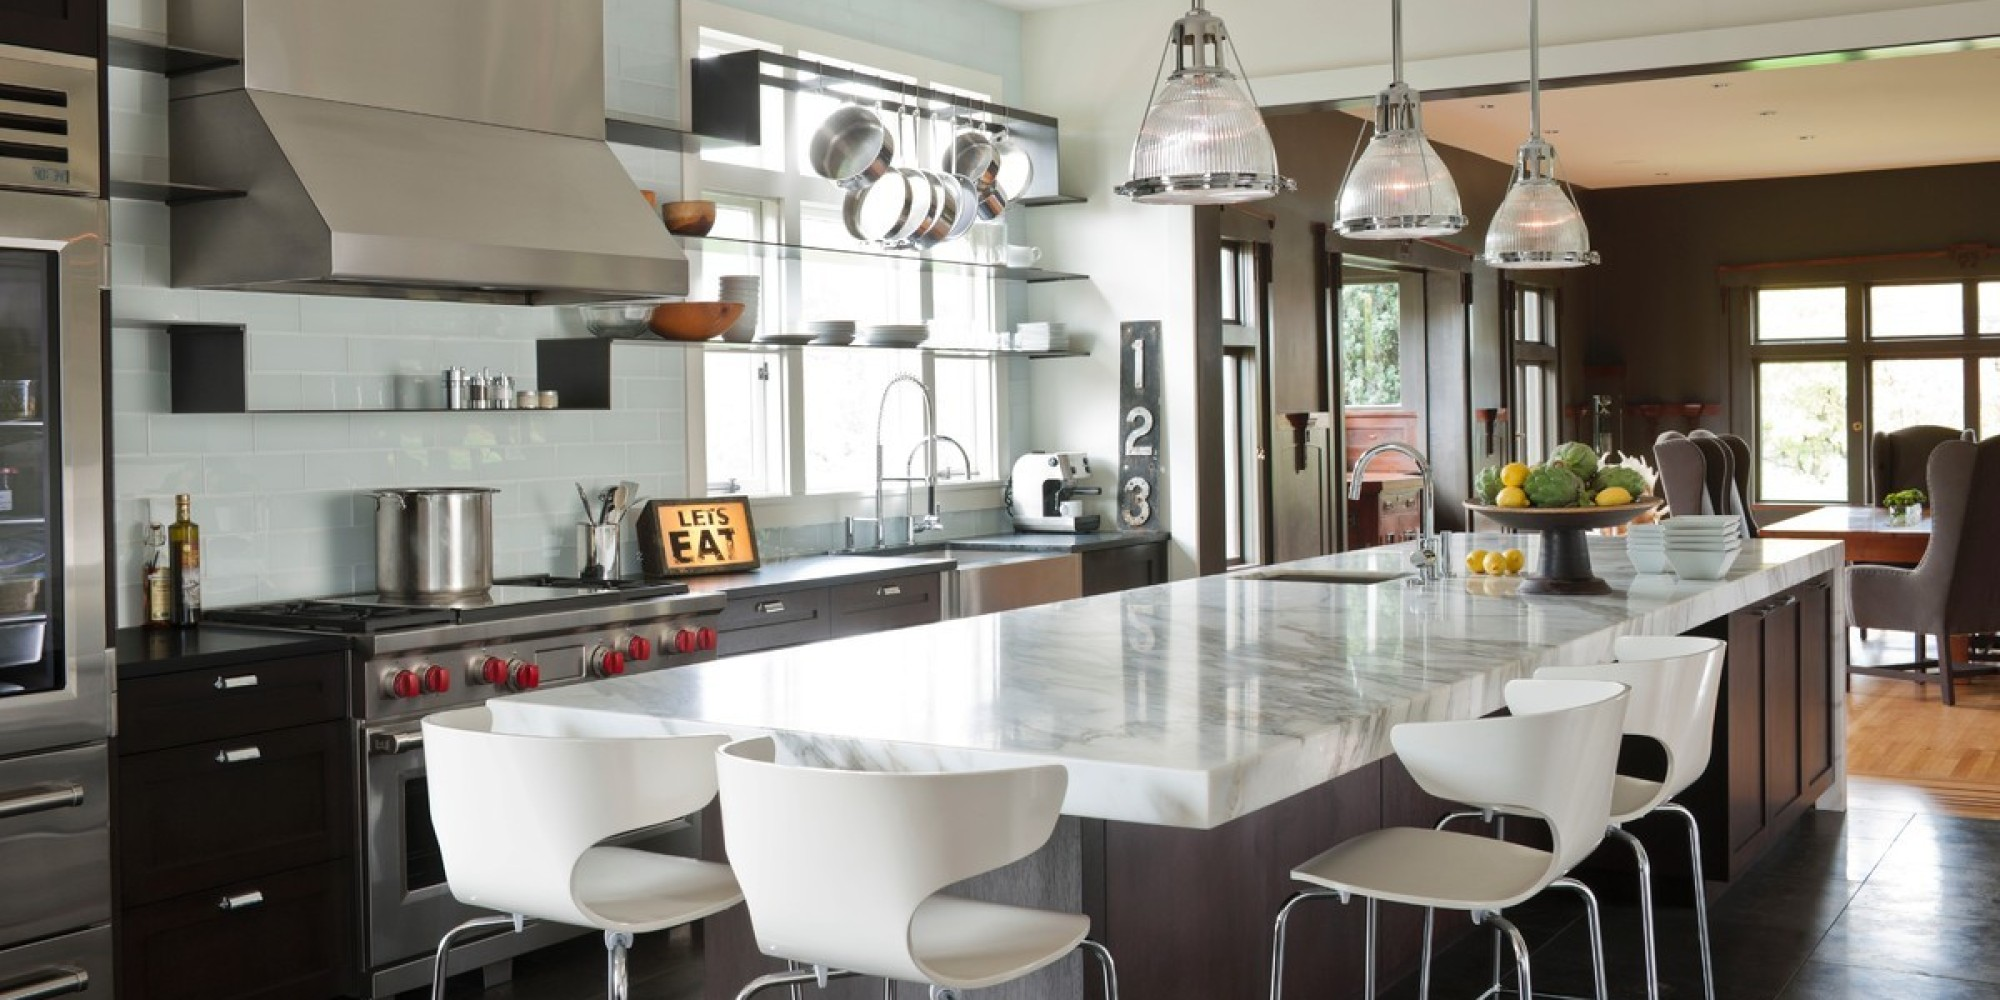 Gourmet Kitchen Design Amusing These 14 Incredible Kitchens Are What Dreams Are Made Of Photos . Design Ideas